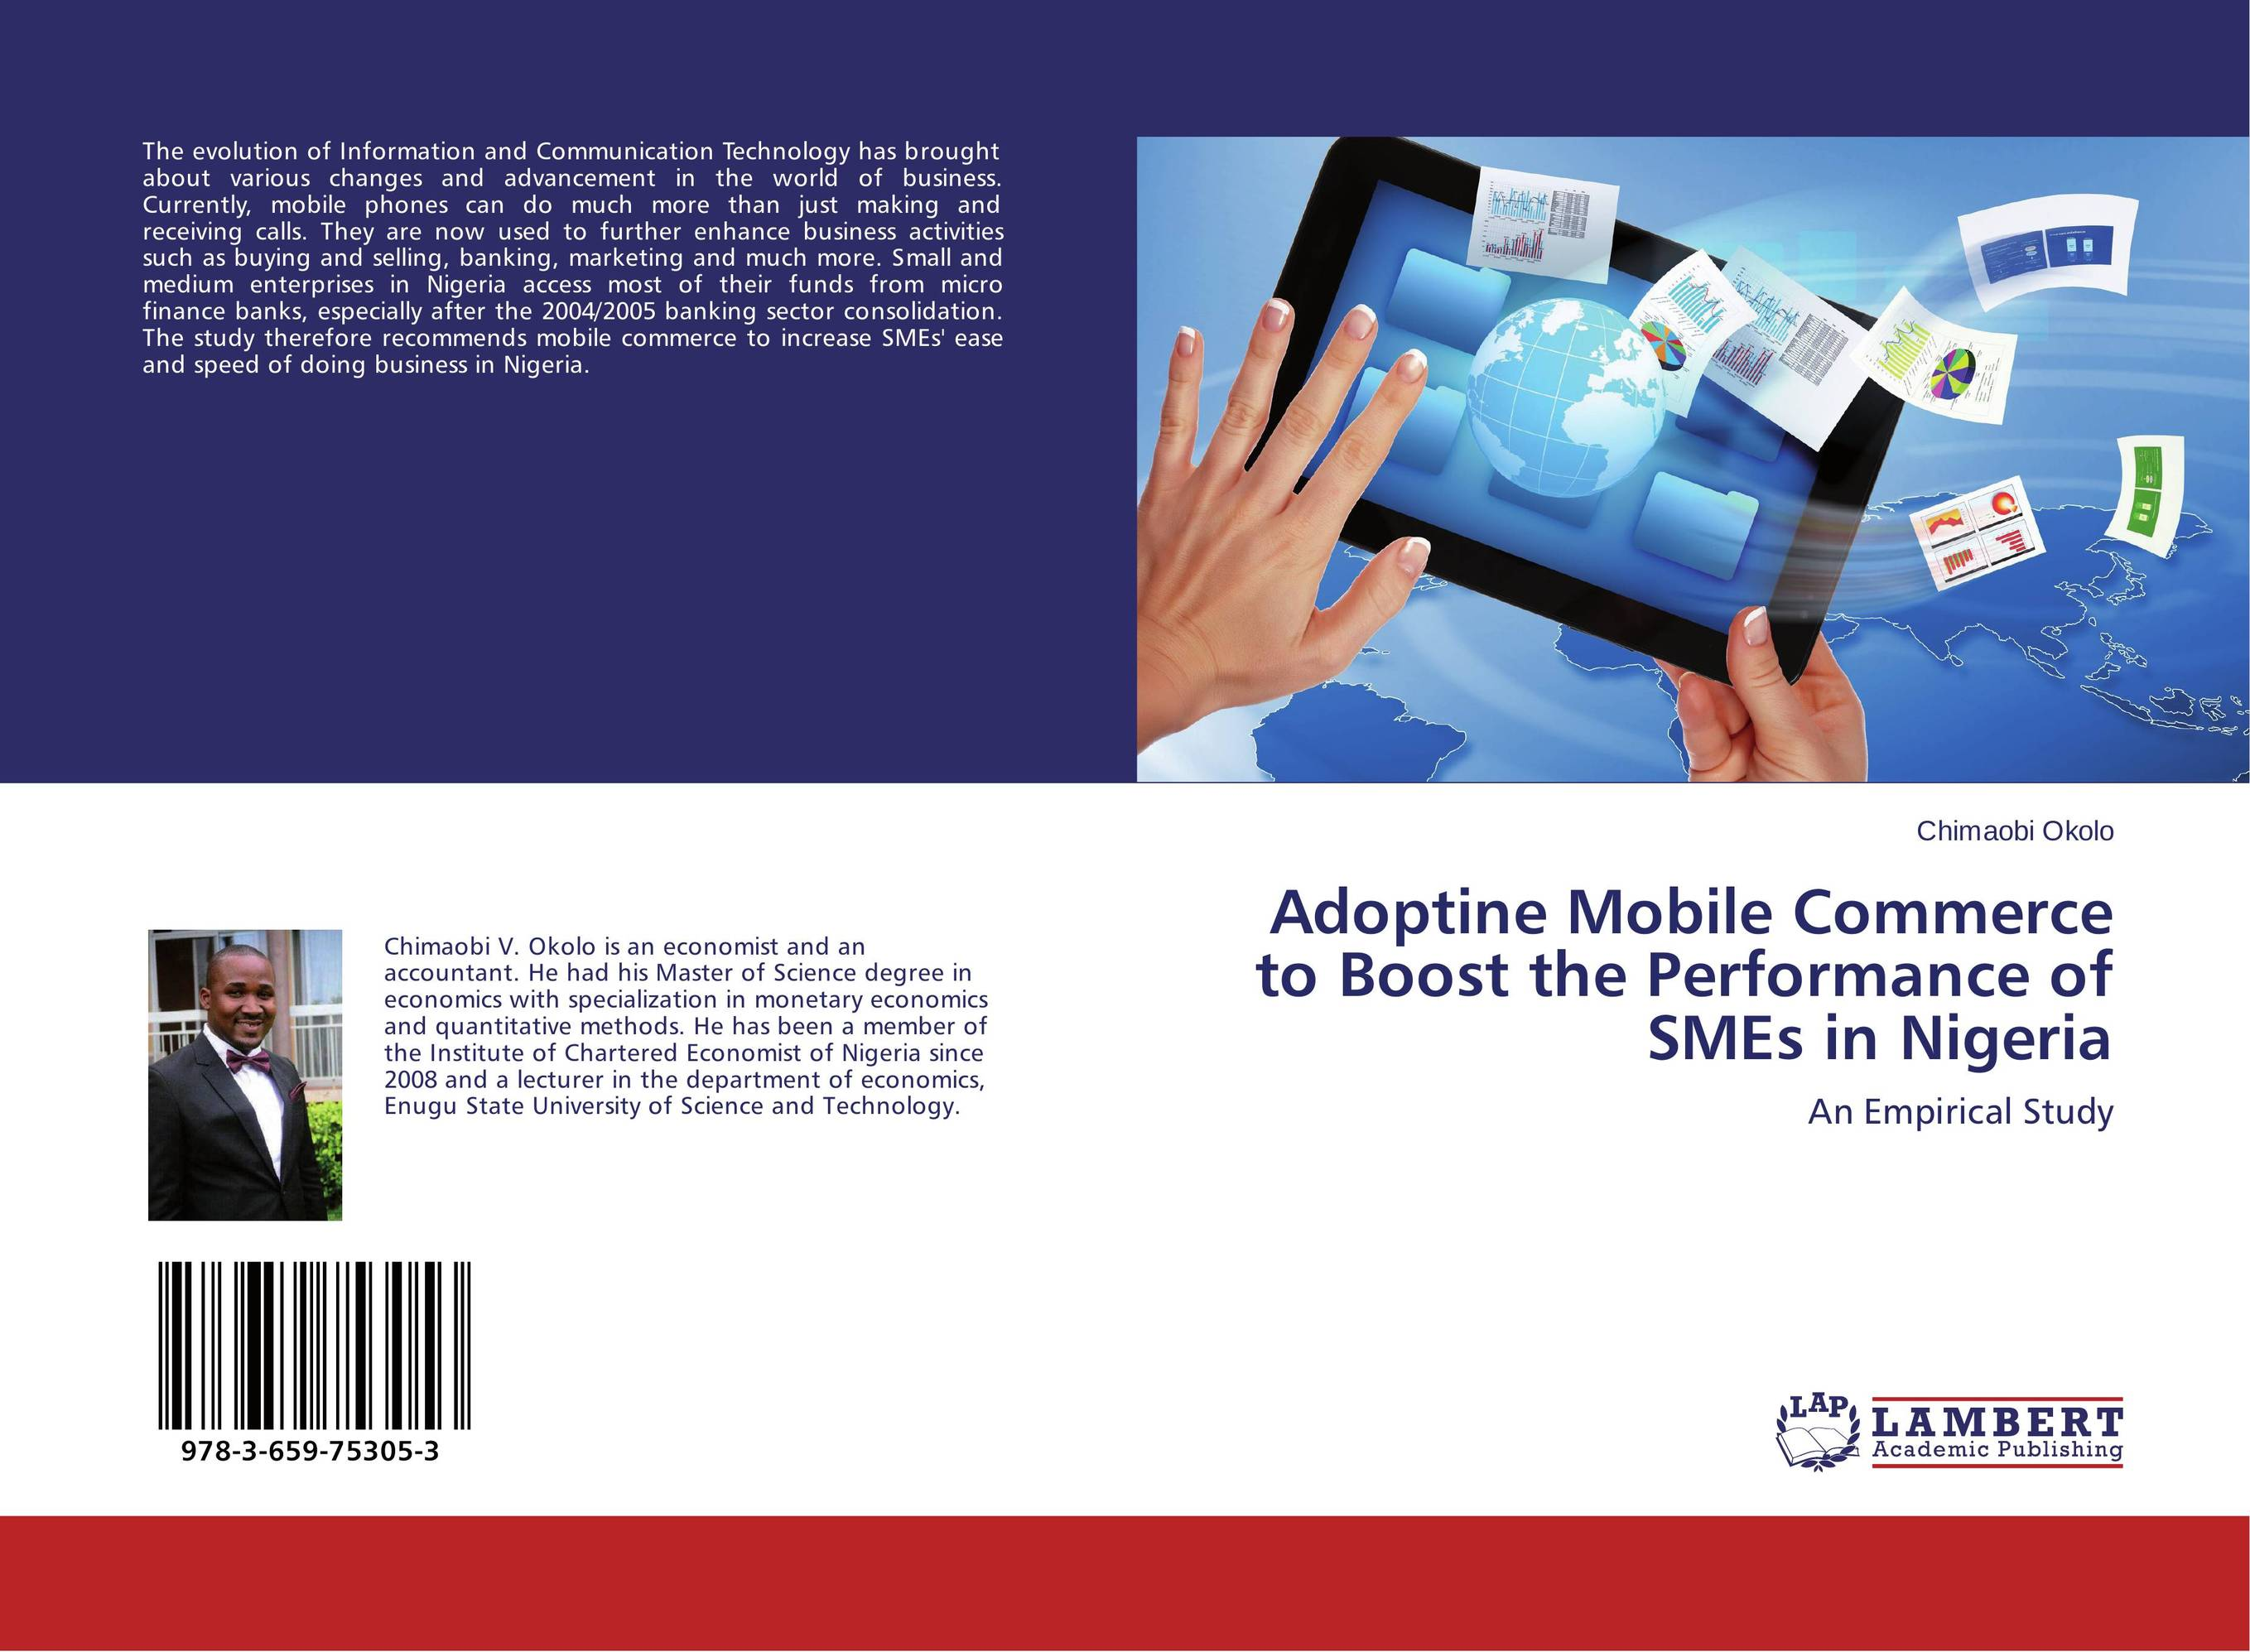 Фото Adoptine Mobile Commerce to Boost the Performance of SMEs in Nigeria finance and investments